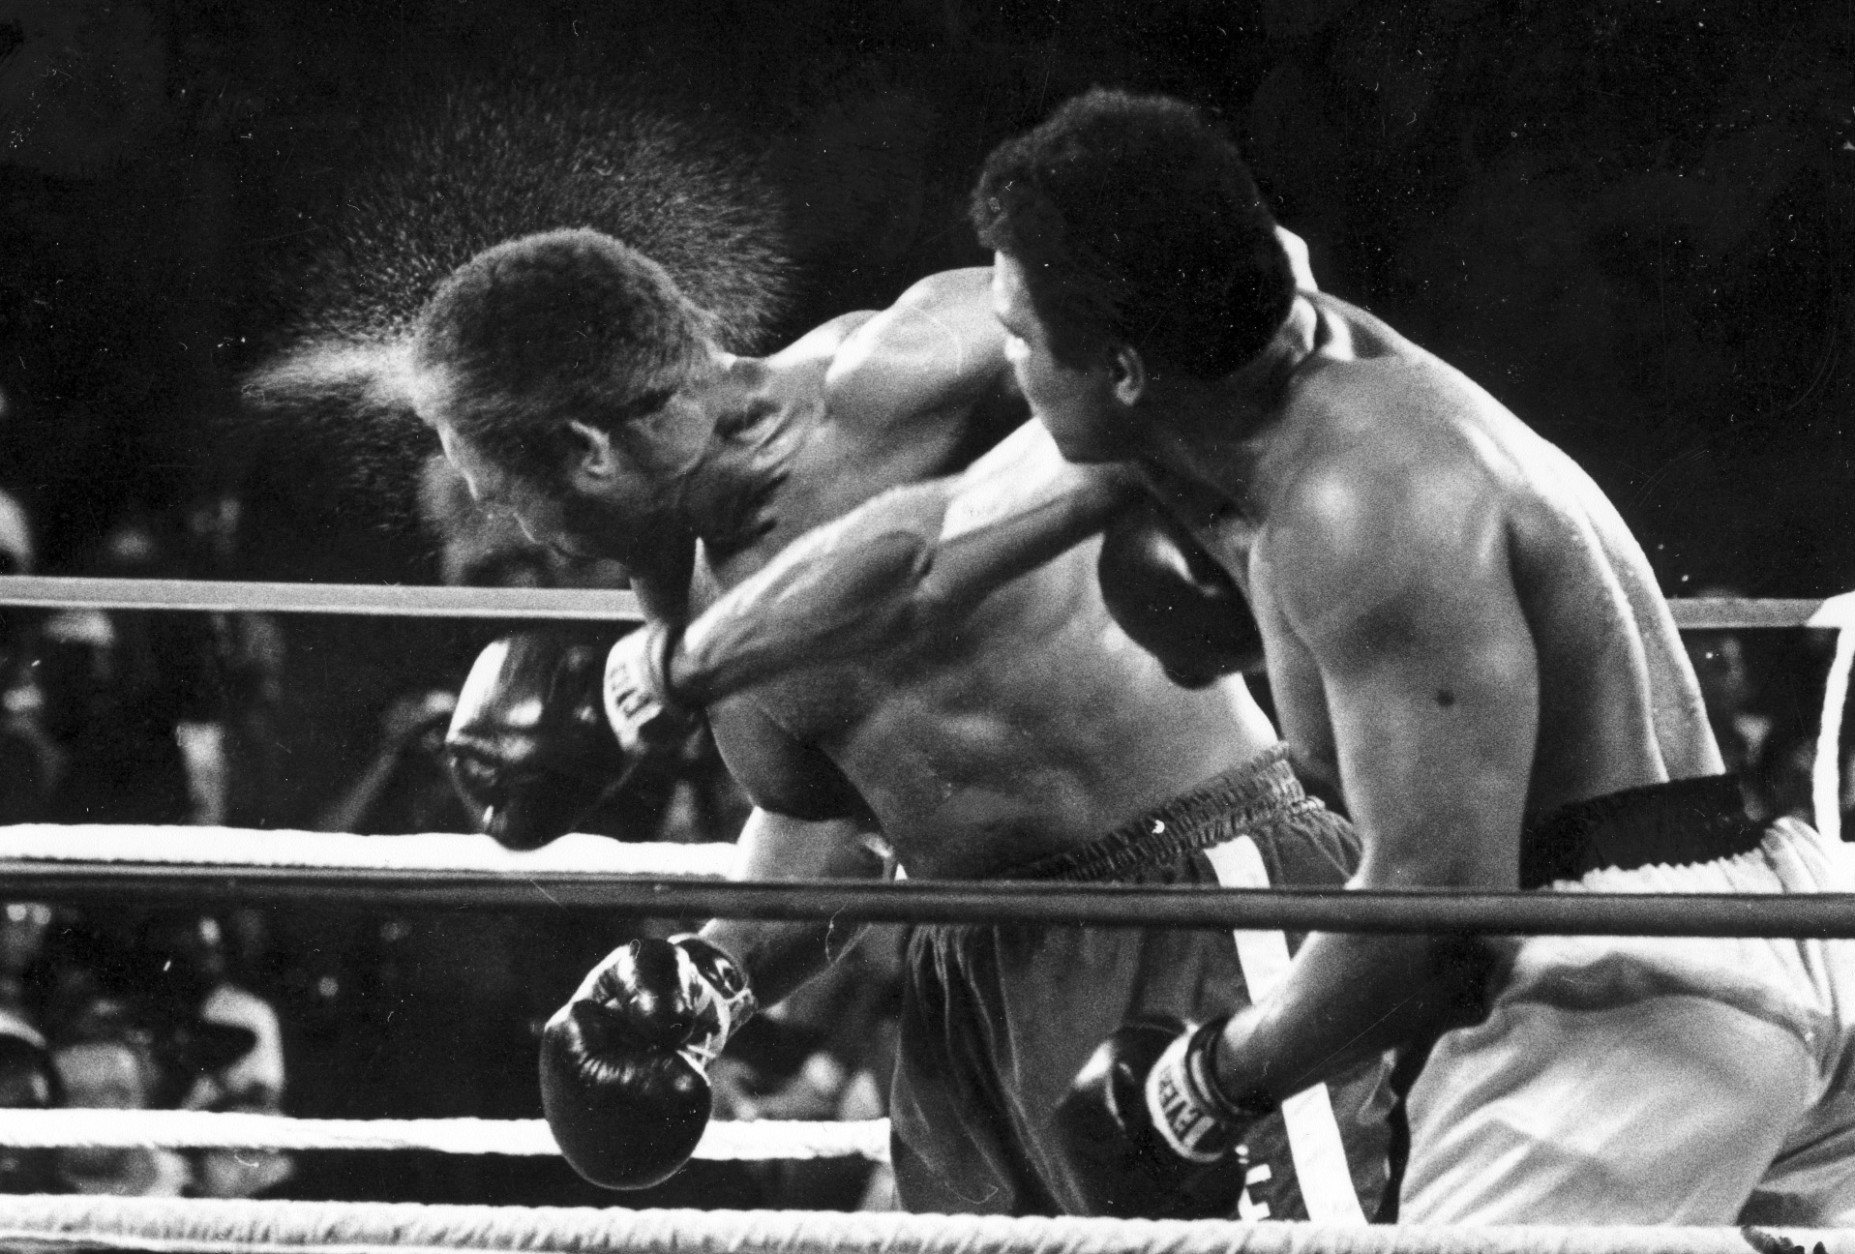 FILE - This is a Oct. 30, 1974,  file photo showing George Foreman taking a right to the head from challenger Muhammad Ali in the seventh round in the match dubbed Rumble in the Jungle in Kinshasa, Zaire. Ali, the magnificent heavyweight champion whose fast fists and irrepressible personality transcended sports and captivated the world, has died according to a statement released by his family Friday, June 3, 2016. He was 74. (AP Photo/Ed Kolenovsky, File)